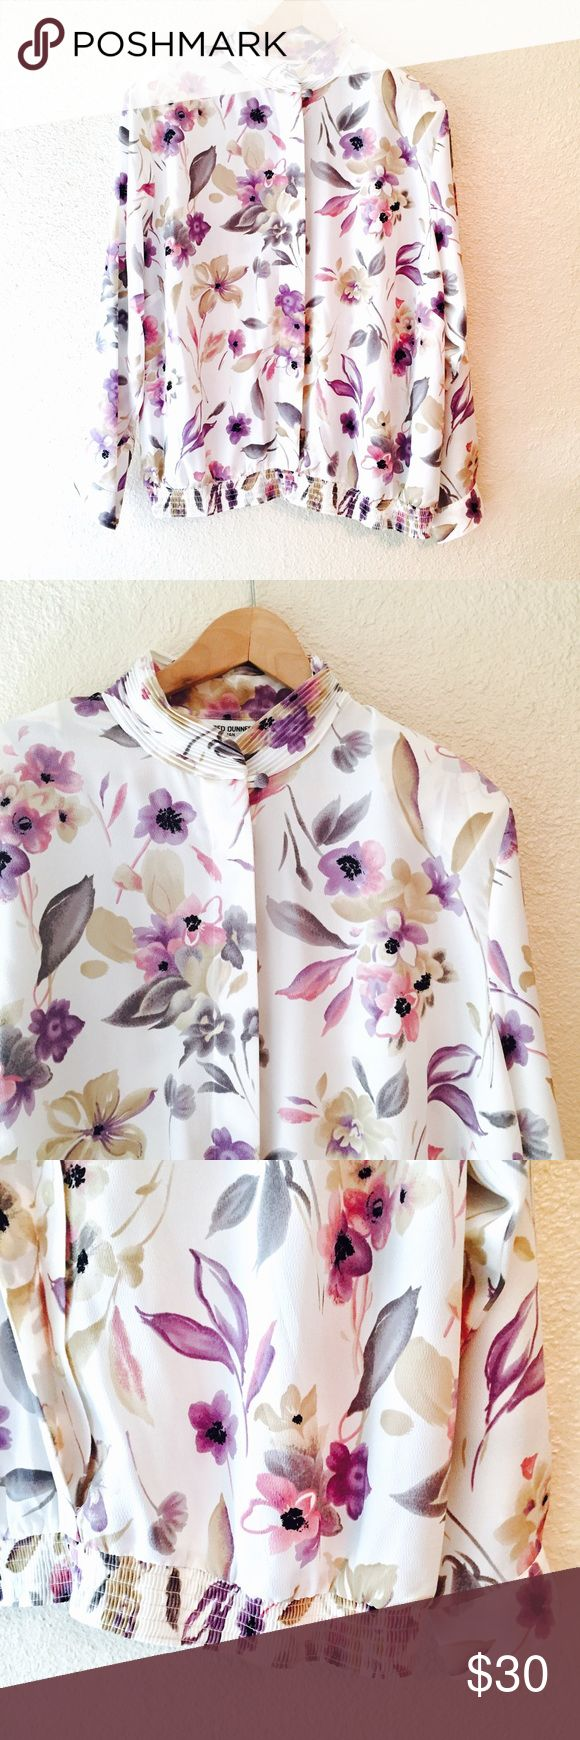 Vintage floral print blouse bomber top shirt 22 W This is a really cool vintage shirt from Alfred Dunner. It's a white blouse with a cool floral print that's mostly purple and pink hues. It's a women's 22, but actually this looks amazing on all sizes. I am a small/medium and it has a cool bomber feel that's oversized. The elastic waist keeps it more fitted. And I'm sure it would be great as a blouse as it was intended too ;) has shoulder pads that can be easily removed. In excellent vintage…